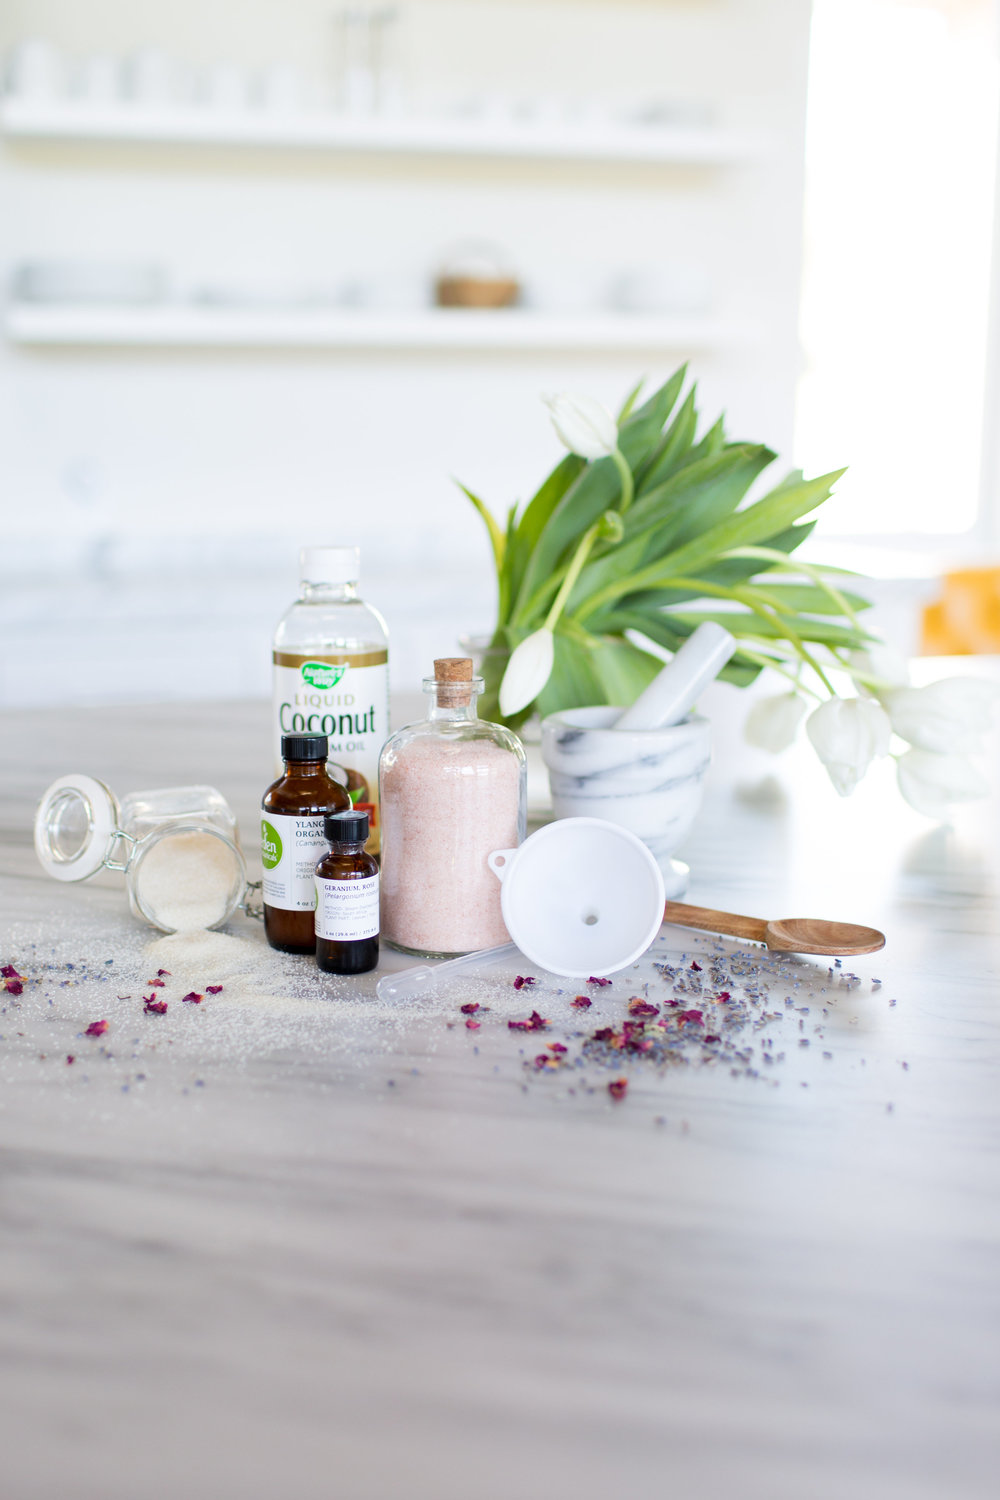 DIY Coco Rose Body Polish by Oak & Ashland | A Savvy Event / A Savvy Lifestyle / Portraits to the People boxwoodavenue.com